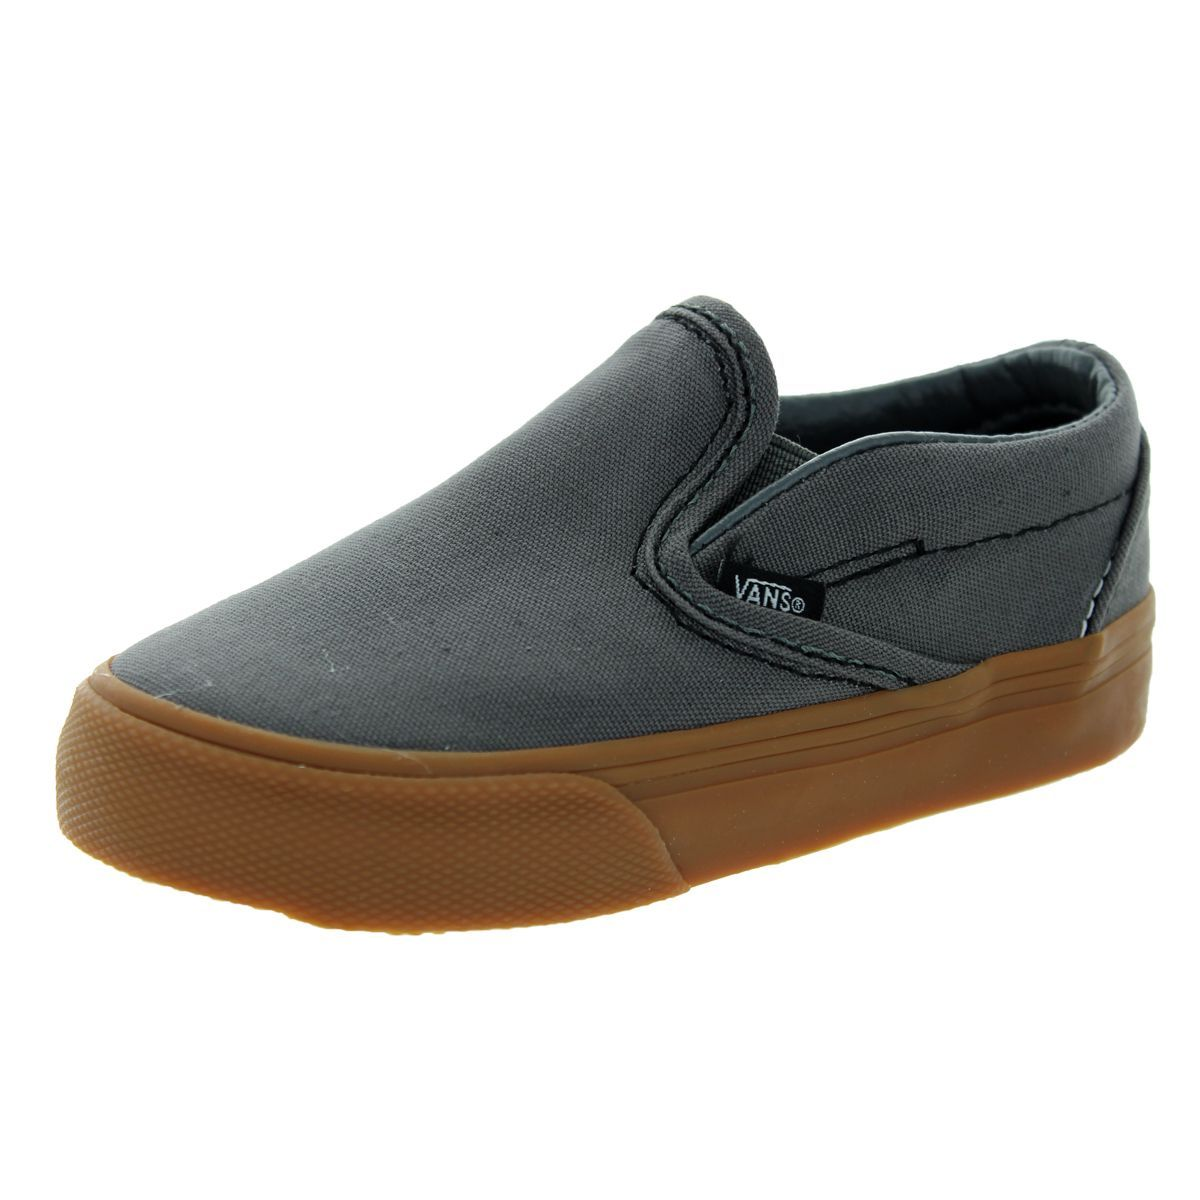 Vans Toddlers Classic Slip-On Pewter/Gum Skate Shoes